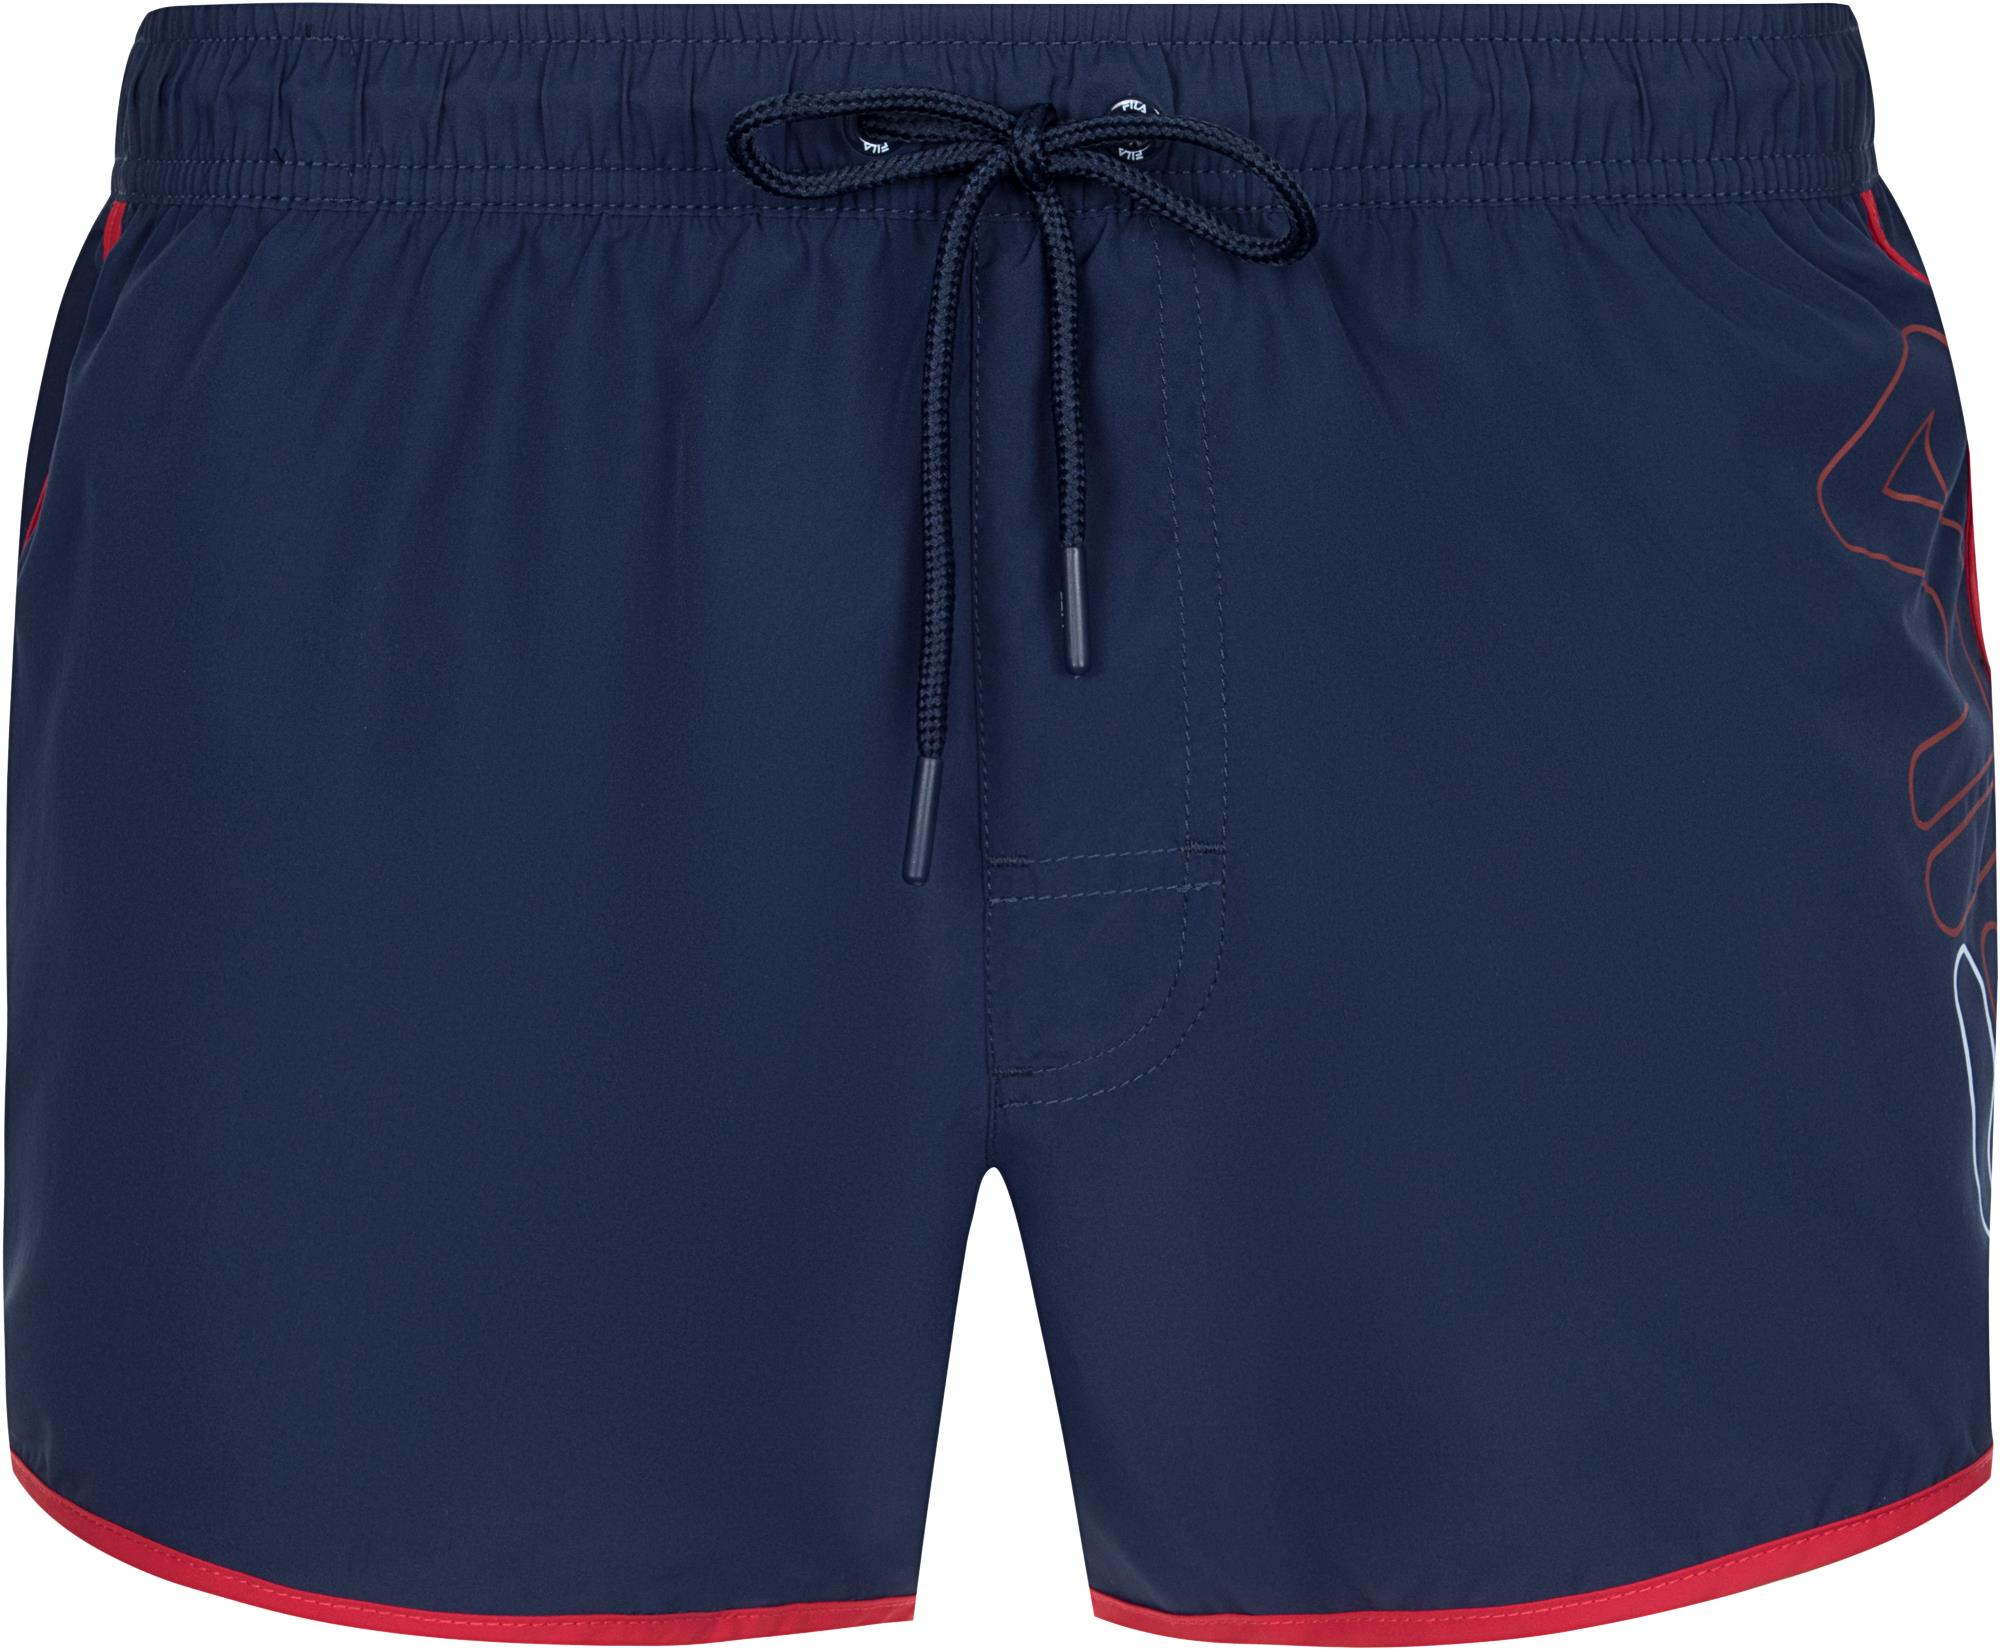 Шорты Fila Mens swim shorts